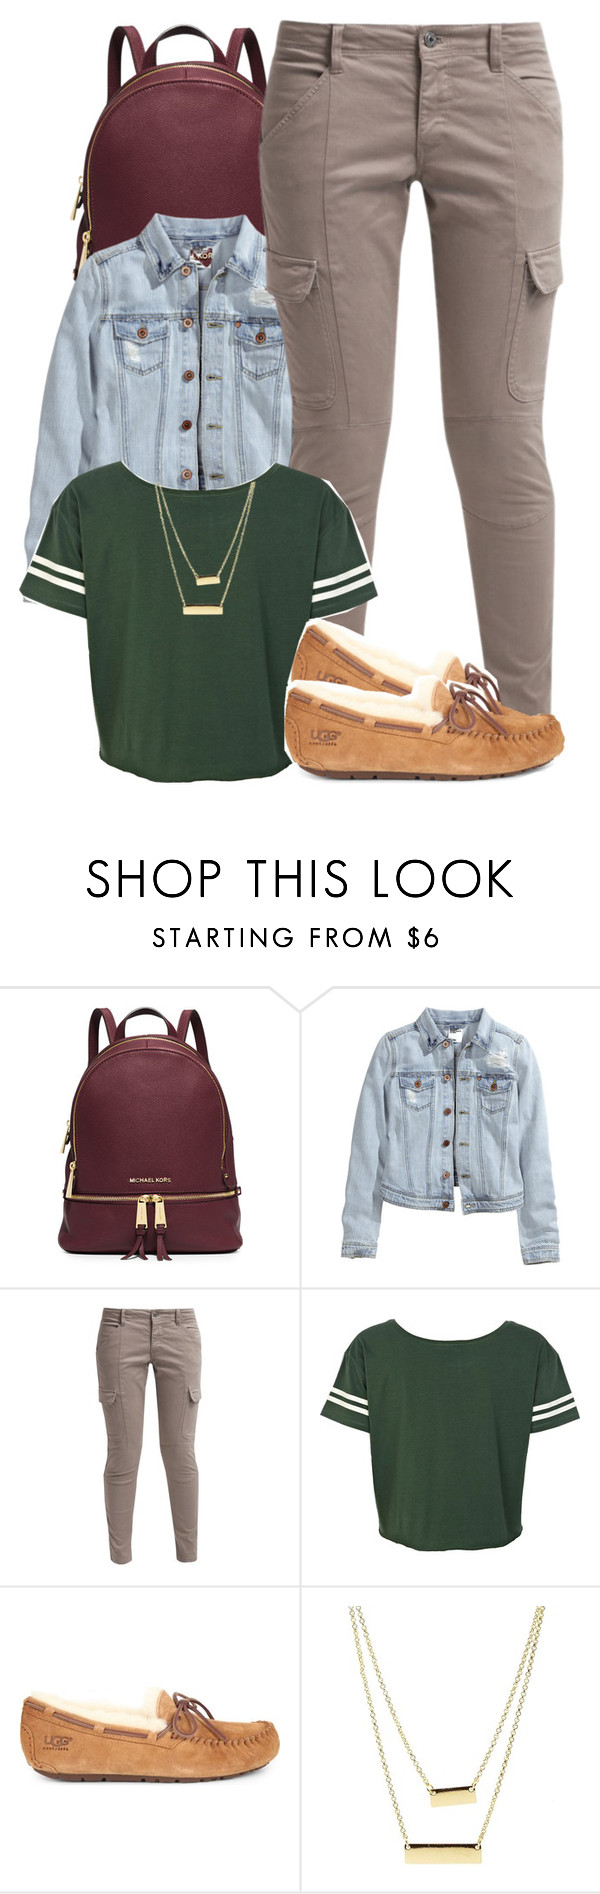 """"" by society-is-ugly ❤ liked on Polyvore featuring MICHAEL Michael Kors, H&M, School Rag, River Island, UGG Australia e Charlotte Russe"